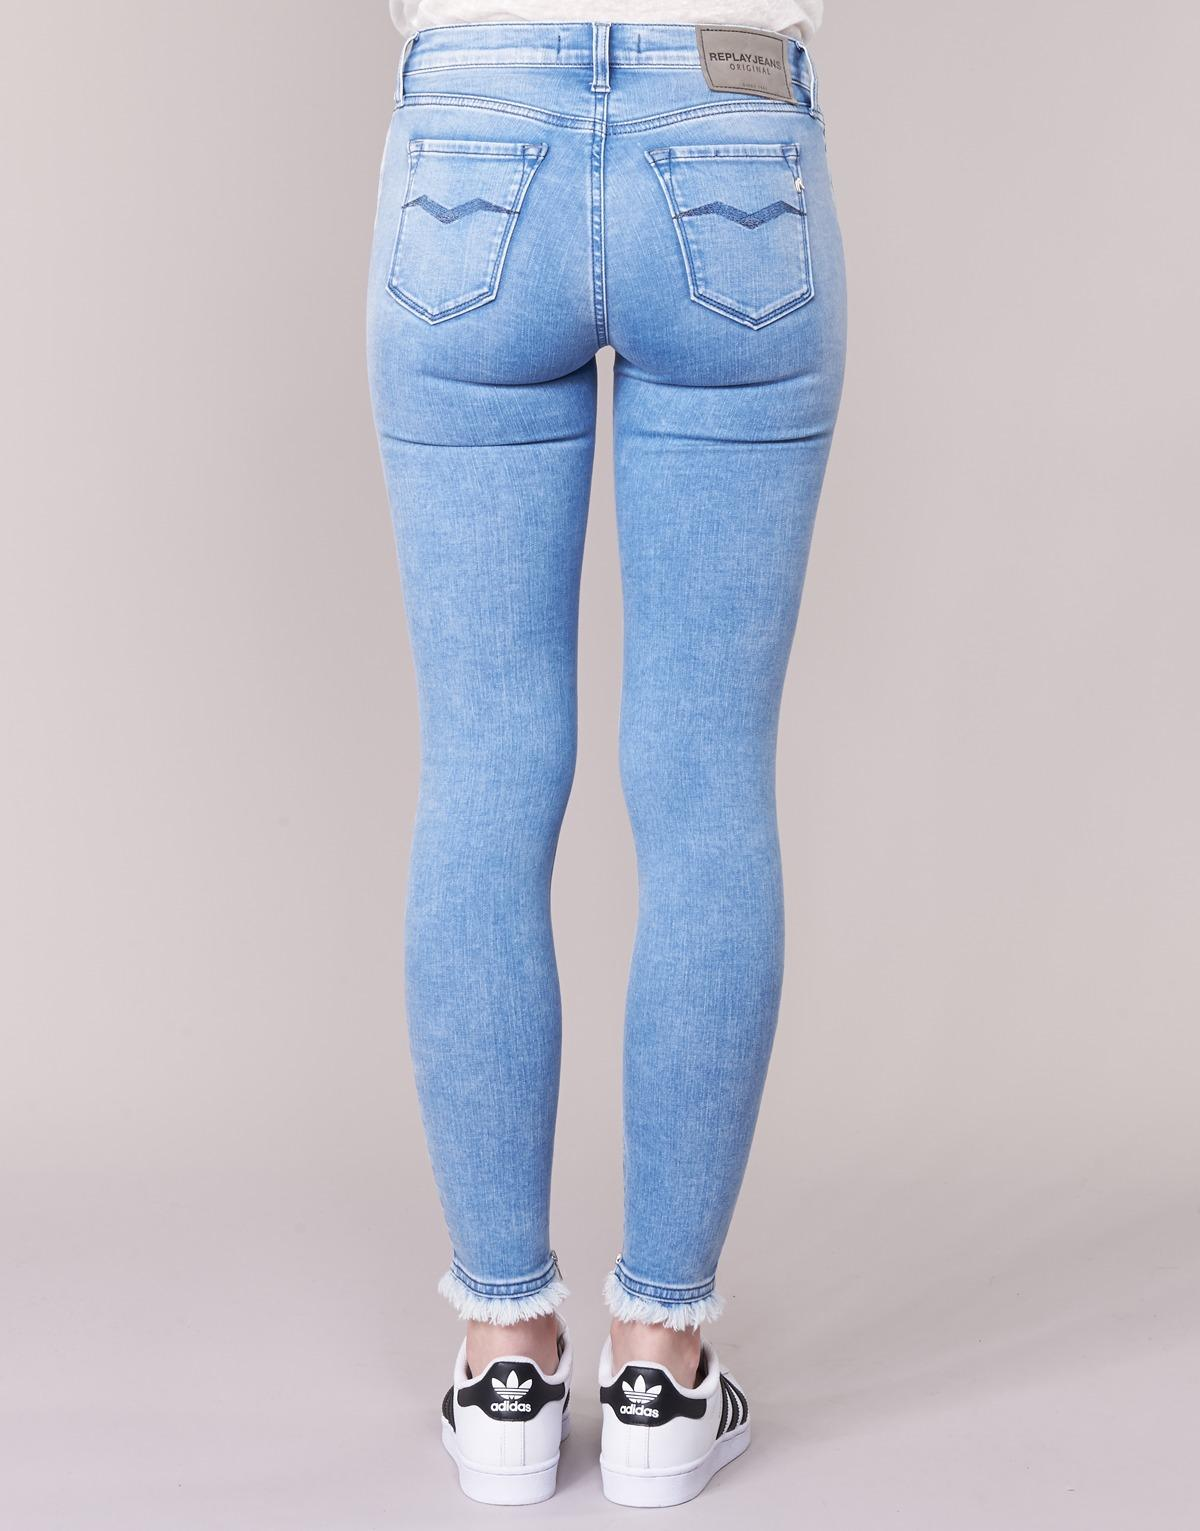 Replay Denim Joi 3/4 & 7/8 Jeans in Blue